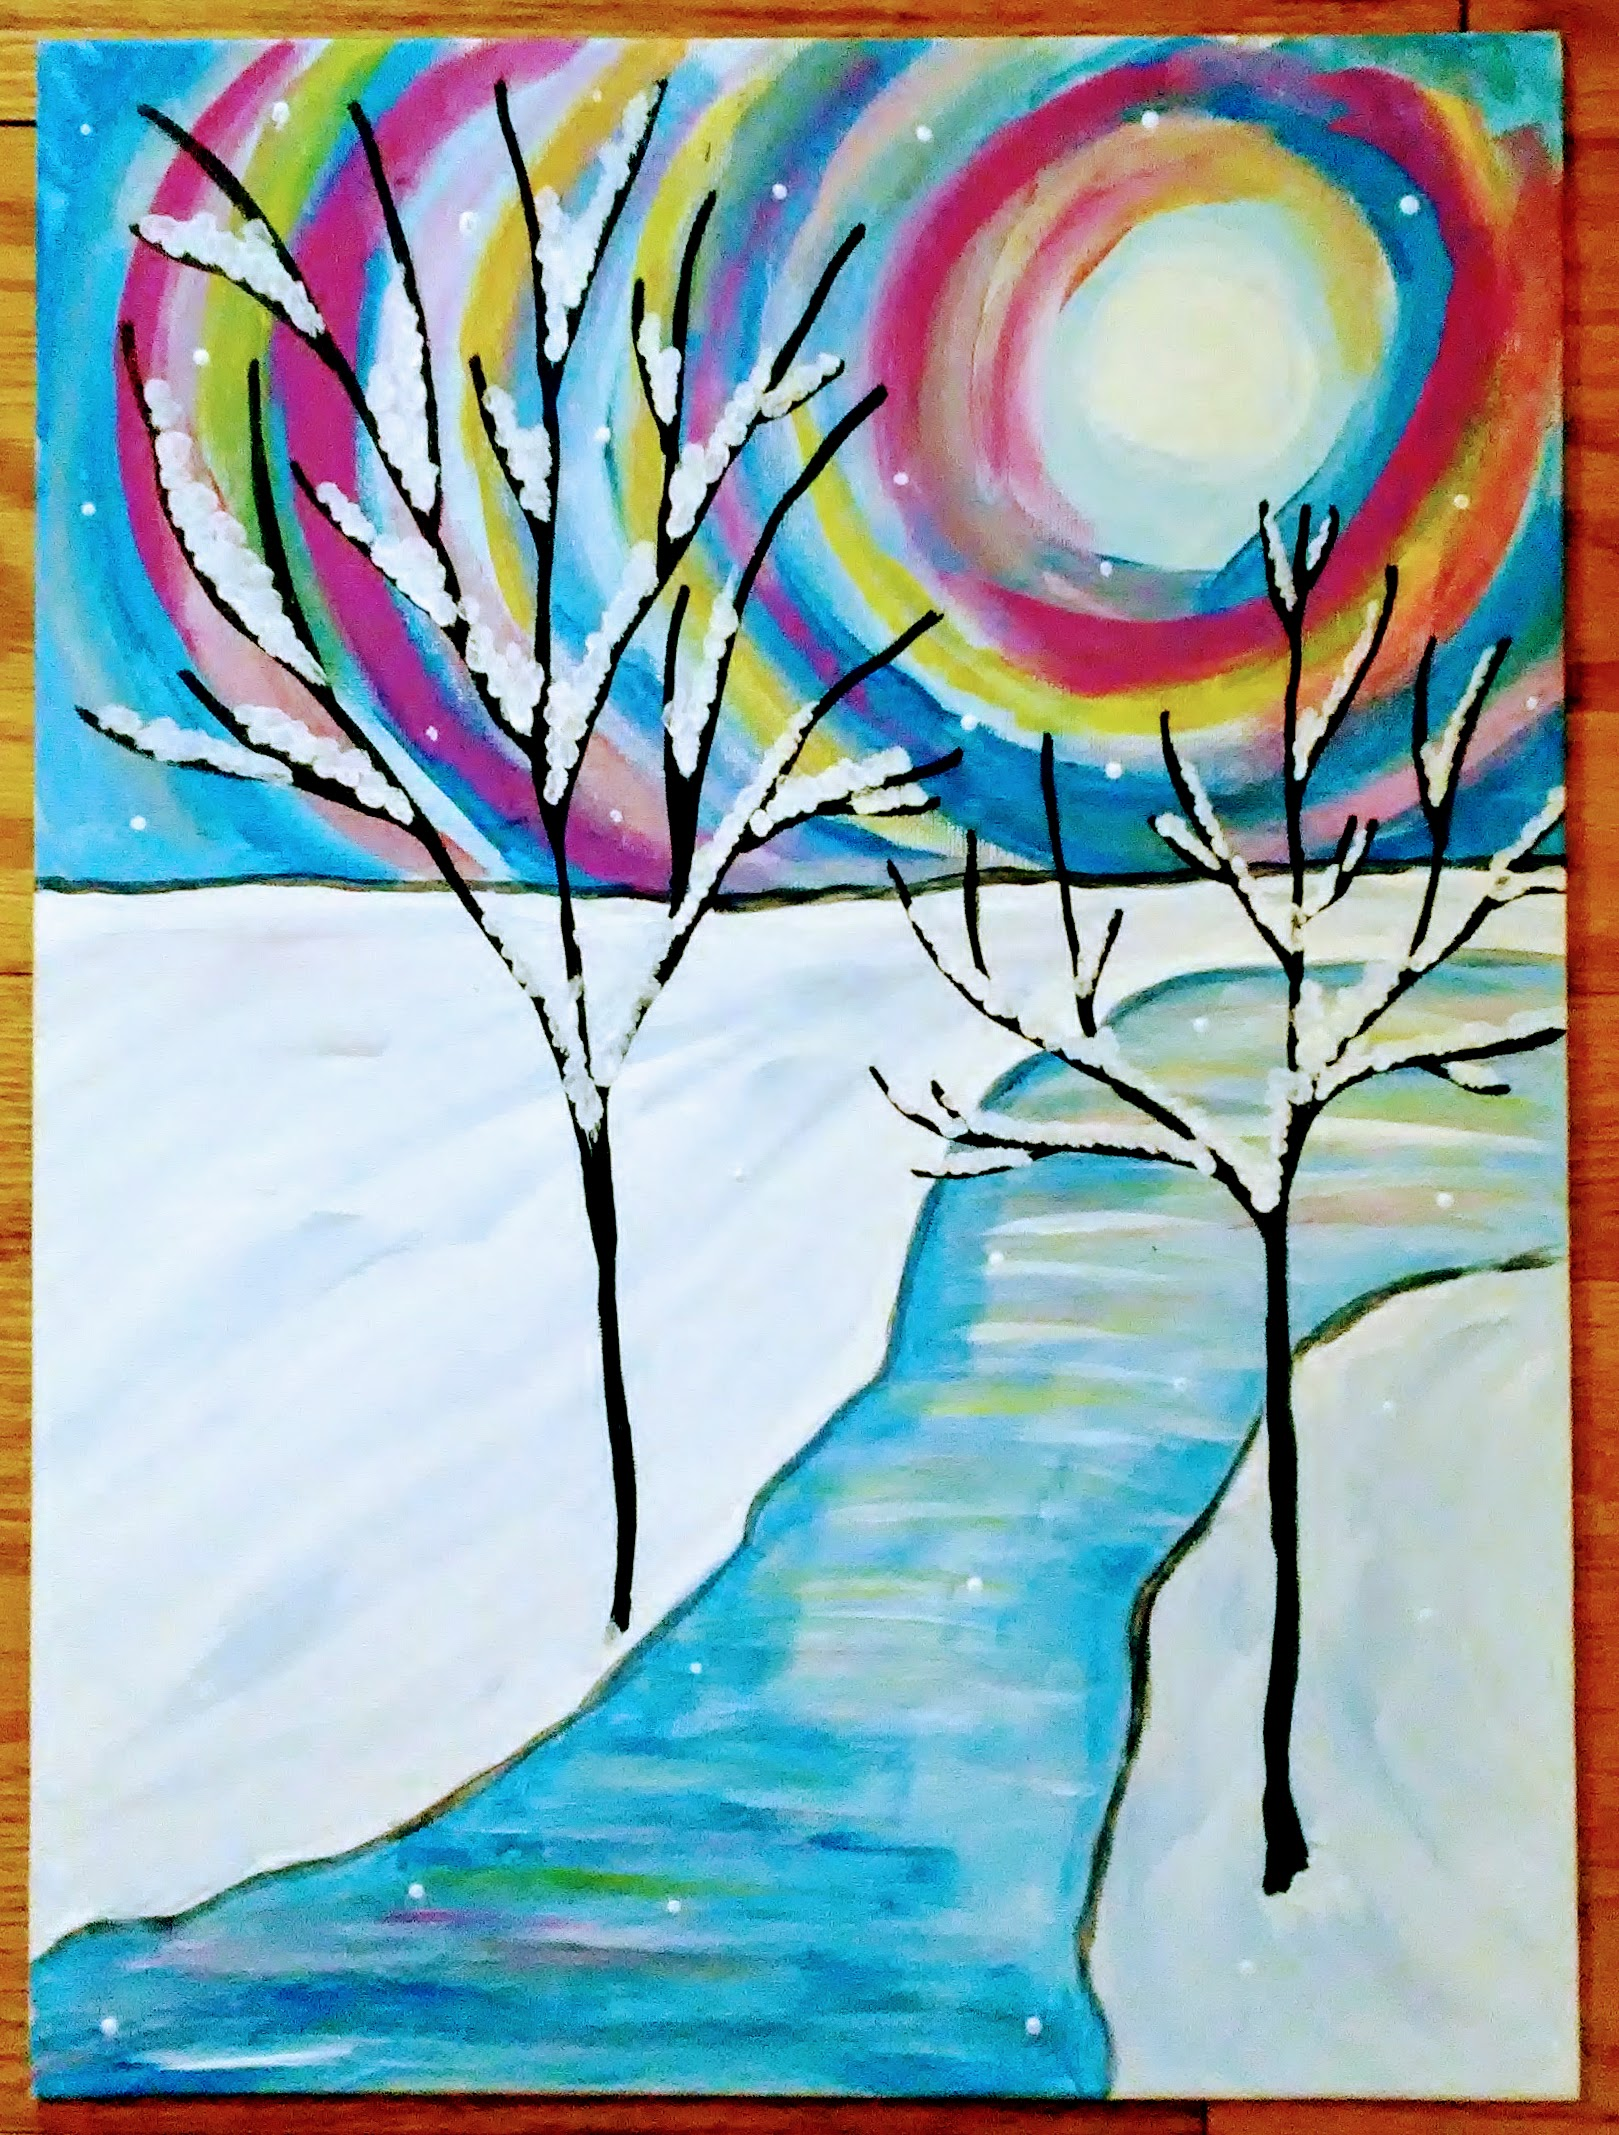 Fauquier Hospital Paint Night Rescheduled to February 27th